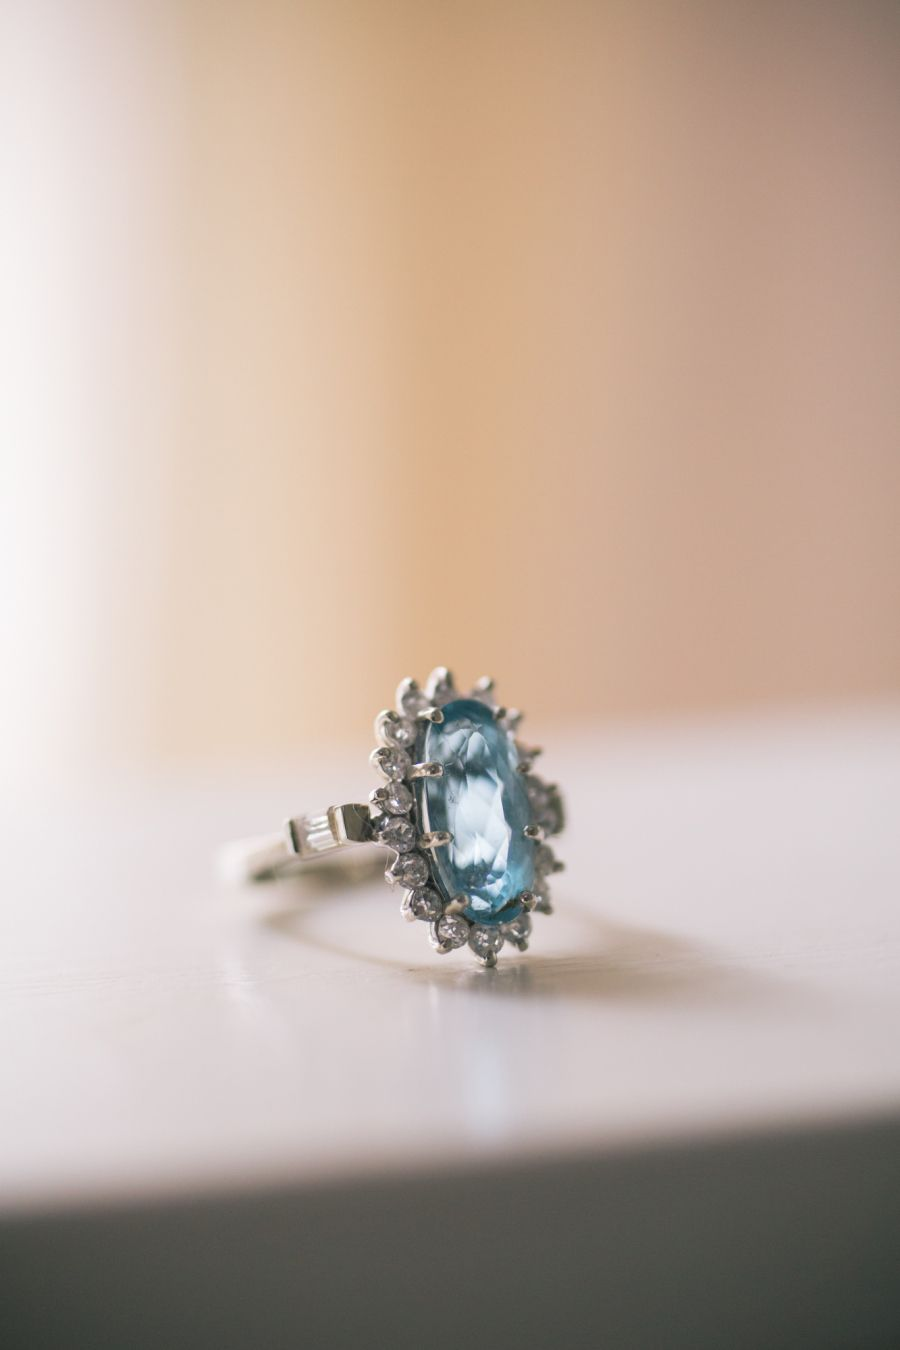 Beautiful aquamarine engagement ring: http://www.stylemepretty.com/2016/04/13/starburst-aquamarine-engagement-ring/